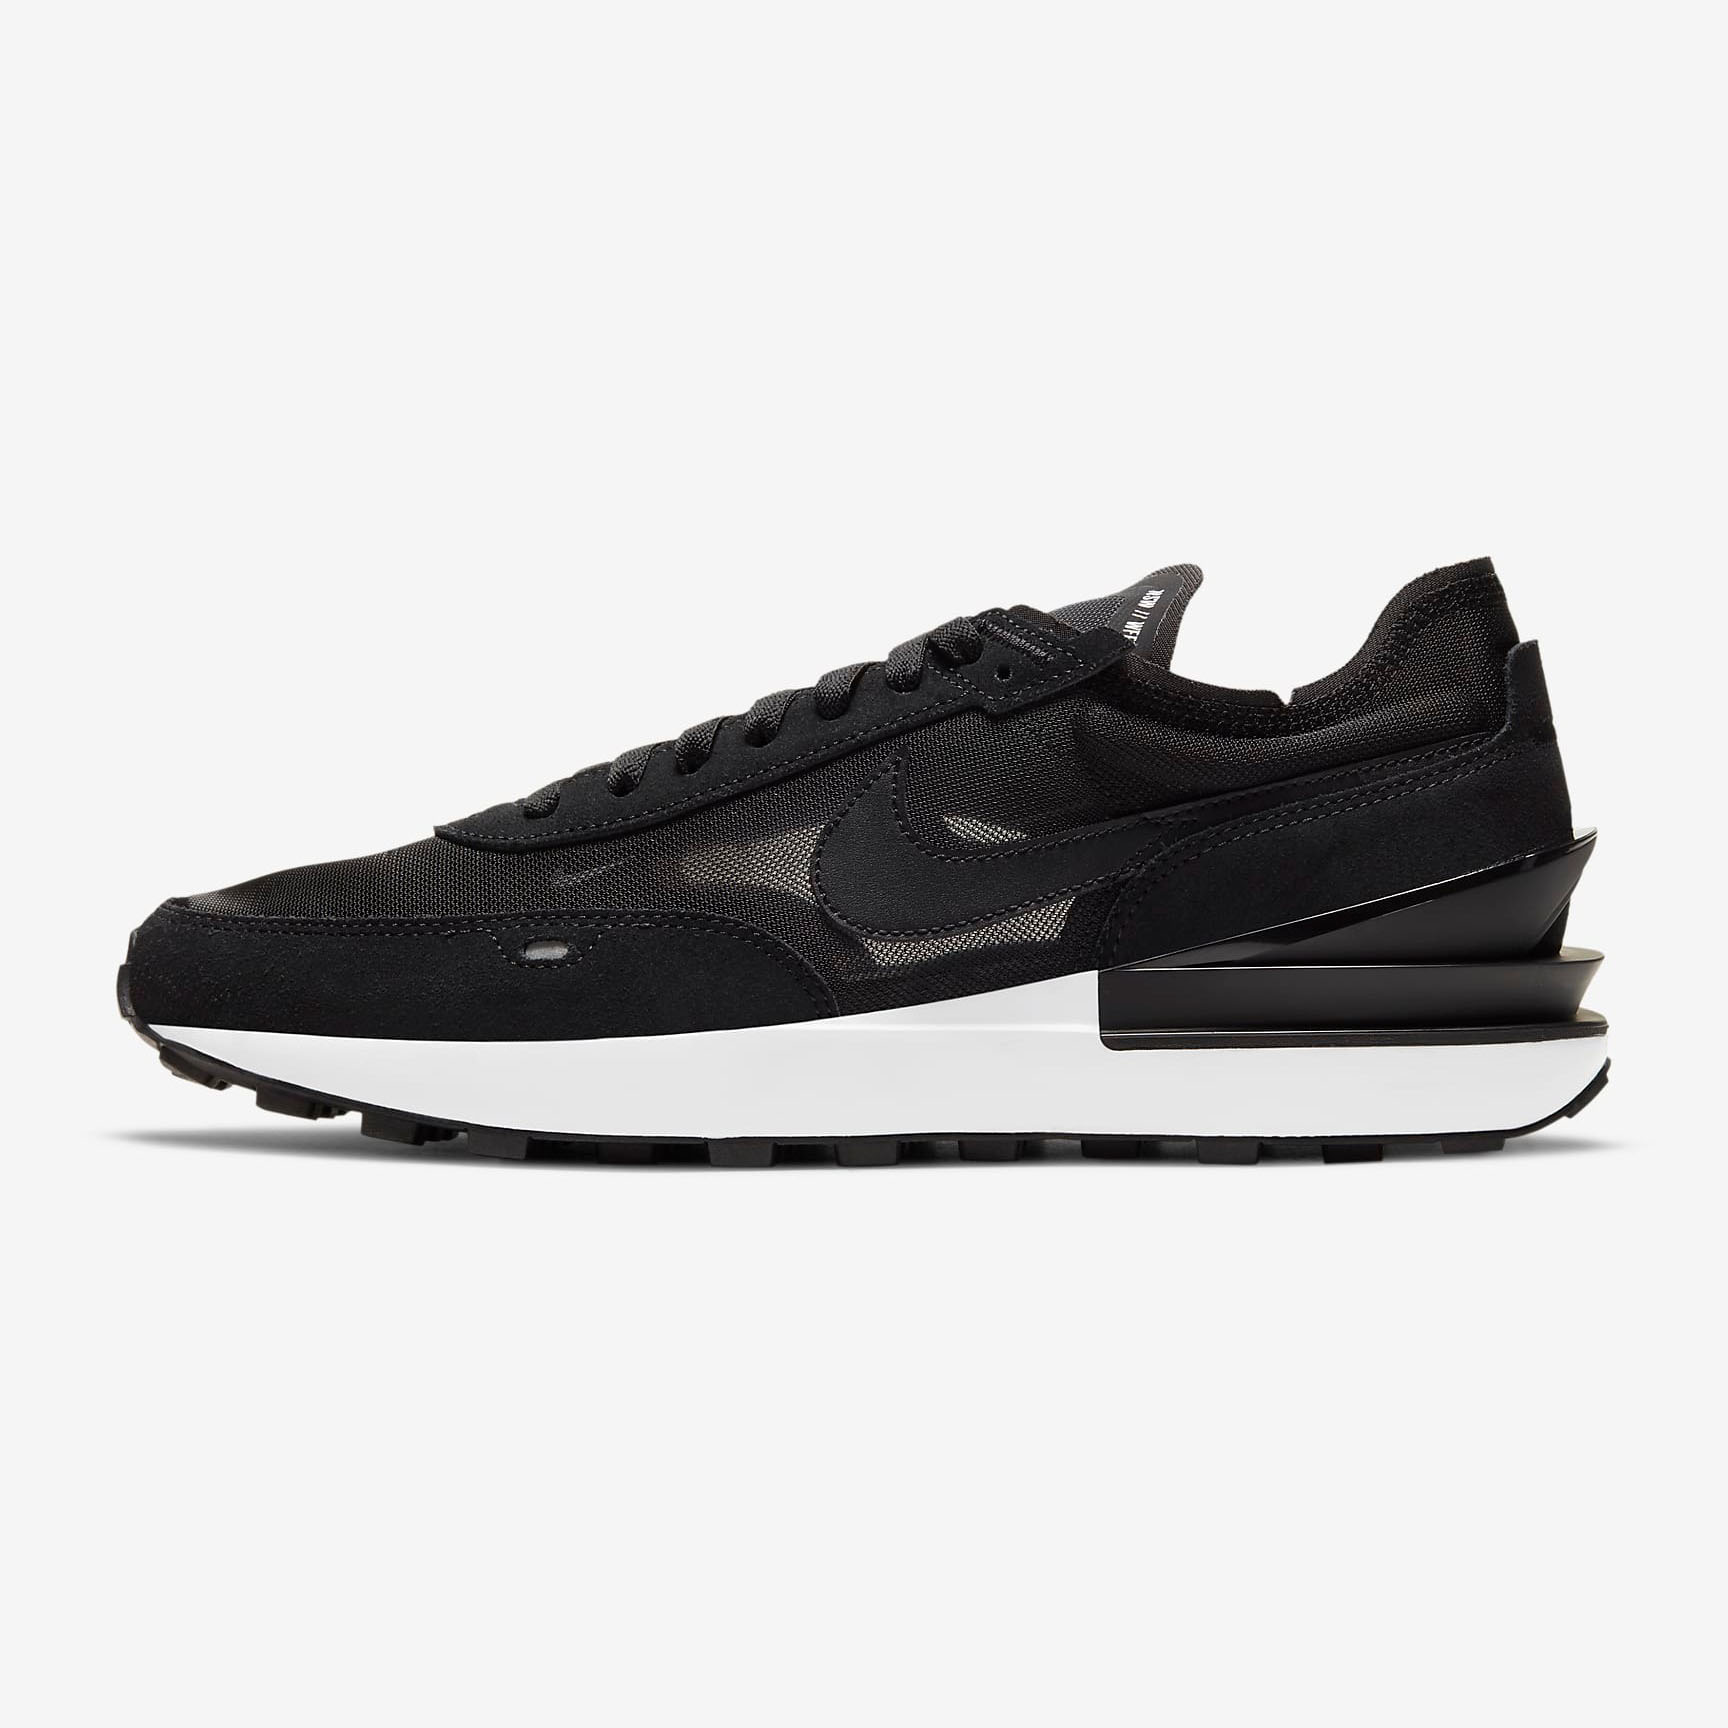 Nike Waffle One Sneaker, best shoes for standing